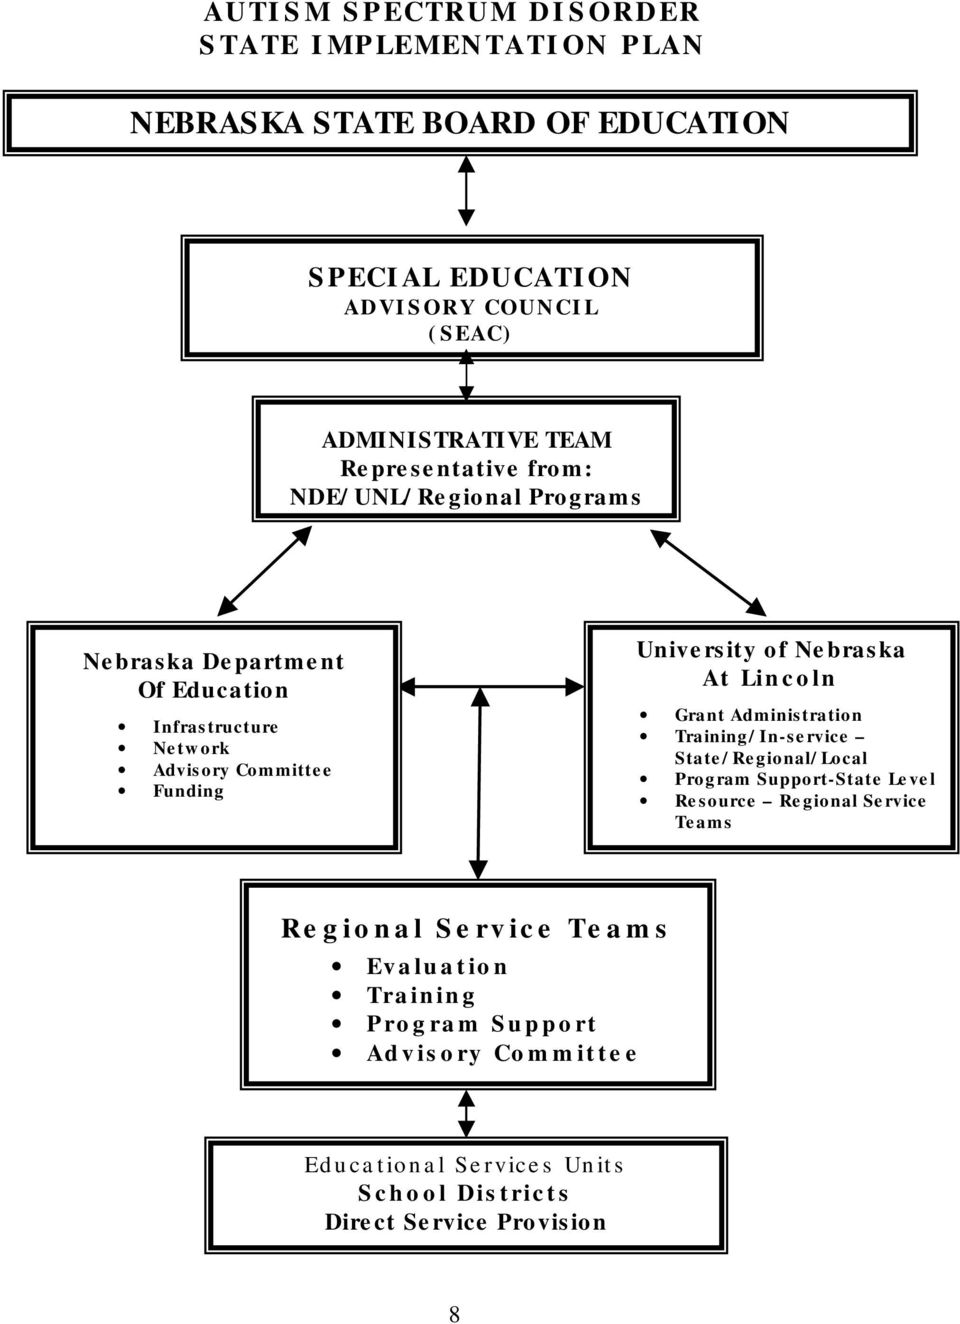 of Nebraska At Lincoln Grant Administration Training/In-service State/Regional/Local Program Support-State Level Resource Regional Service Teams